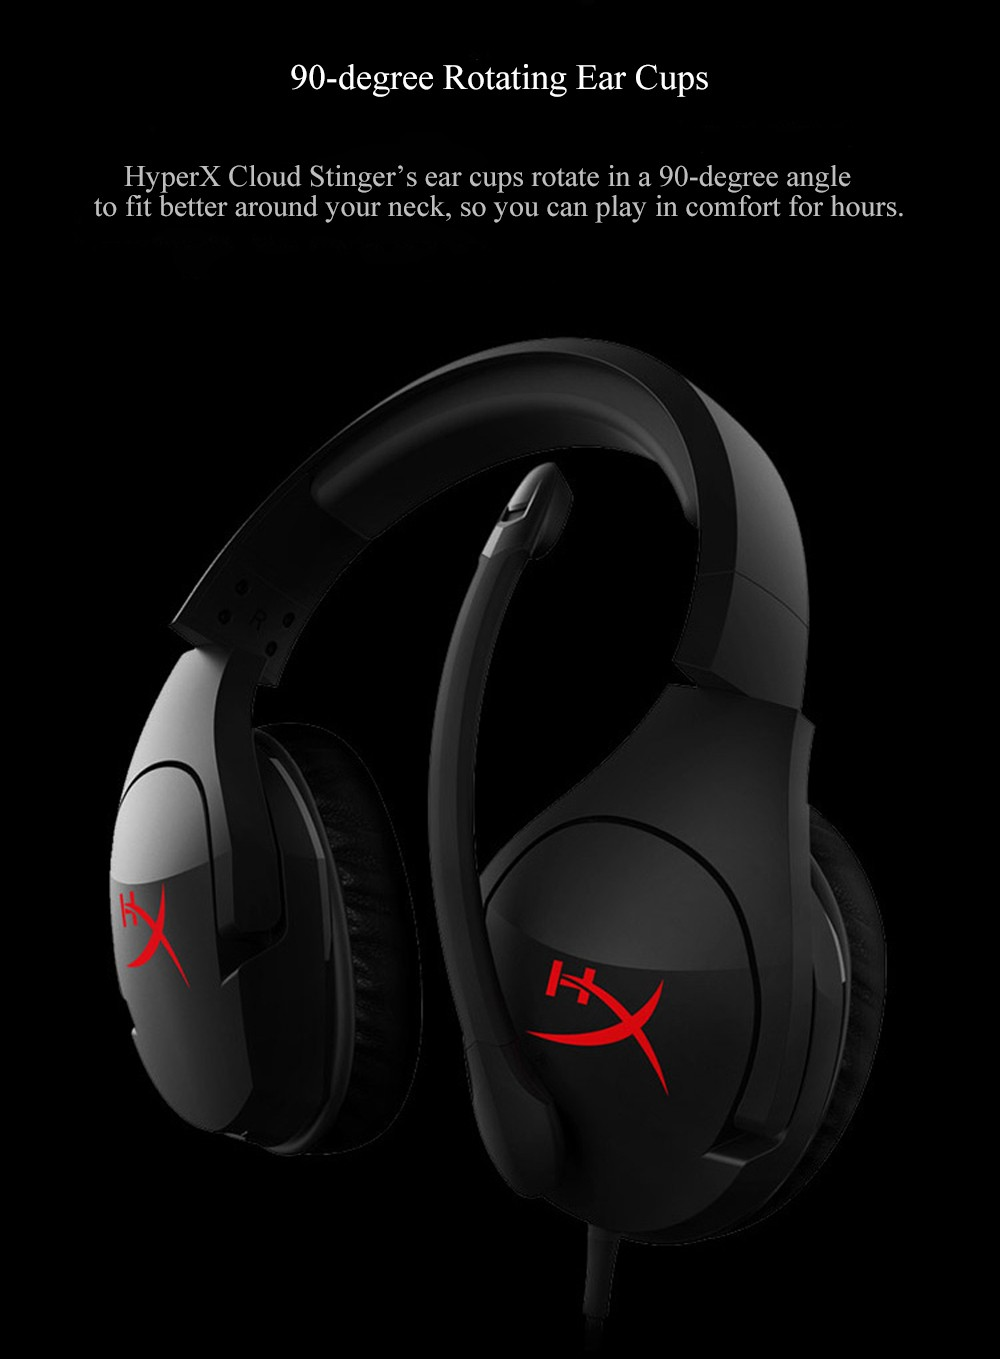 Kingston HyperX Cloud Stinger Auriculares Headphone Steelseries Gaming Headset with Microphone Mic For PC PS4 Xbox Mobile Device (3)